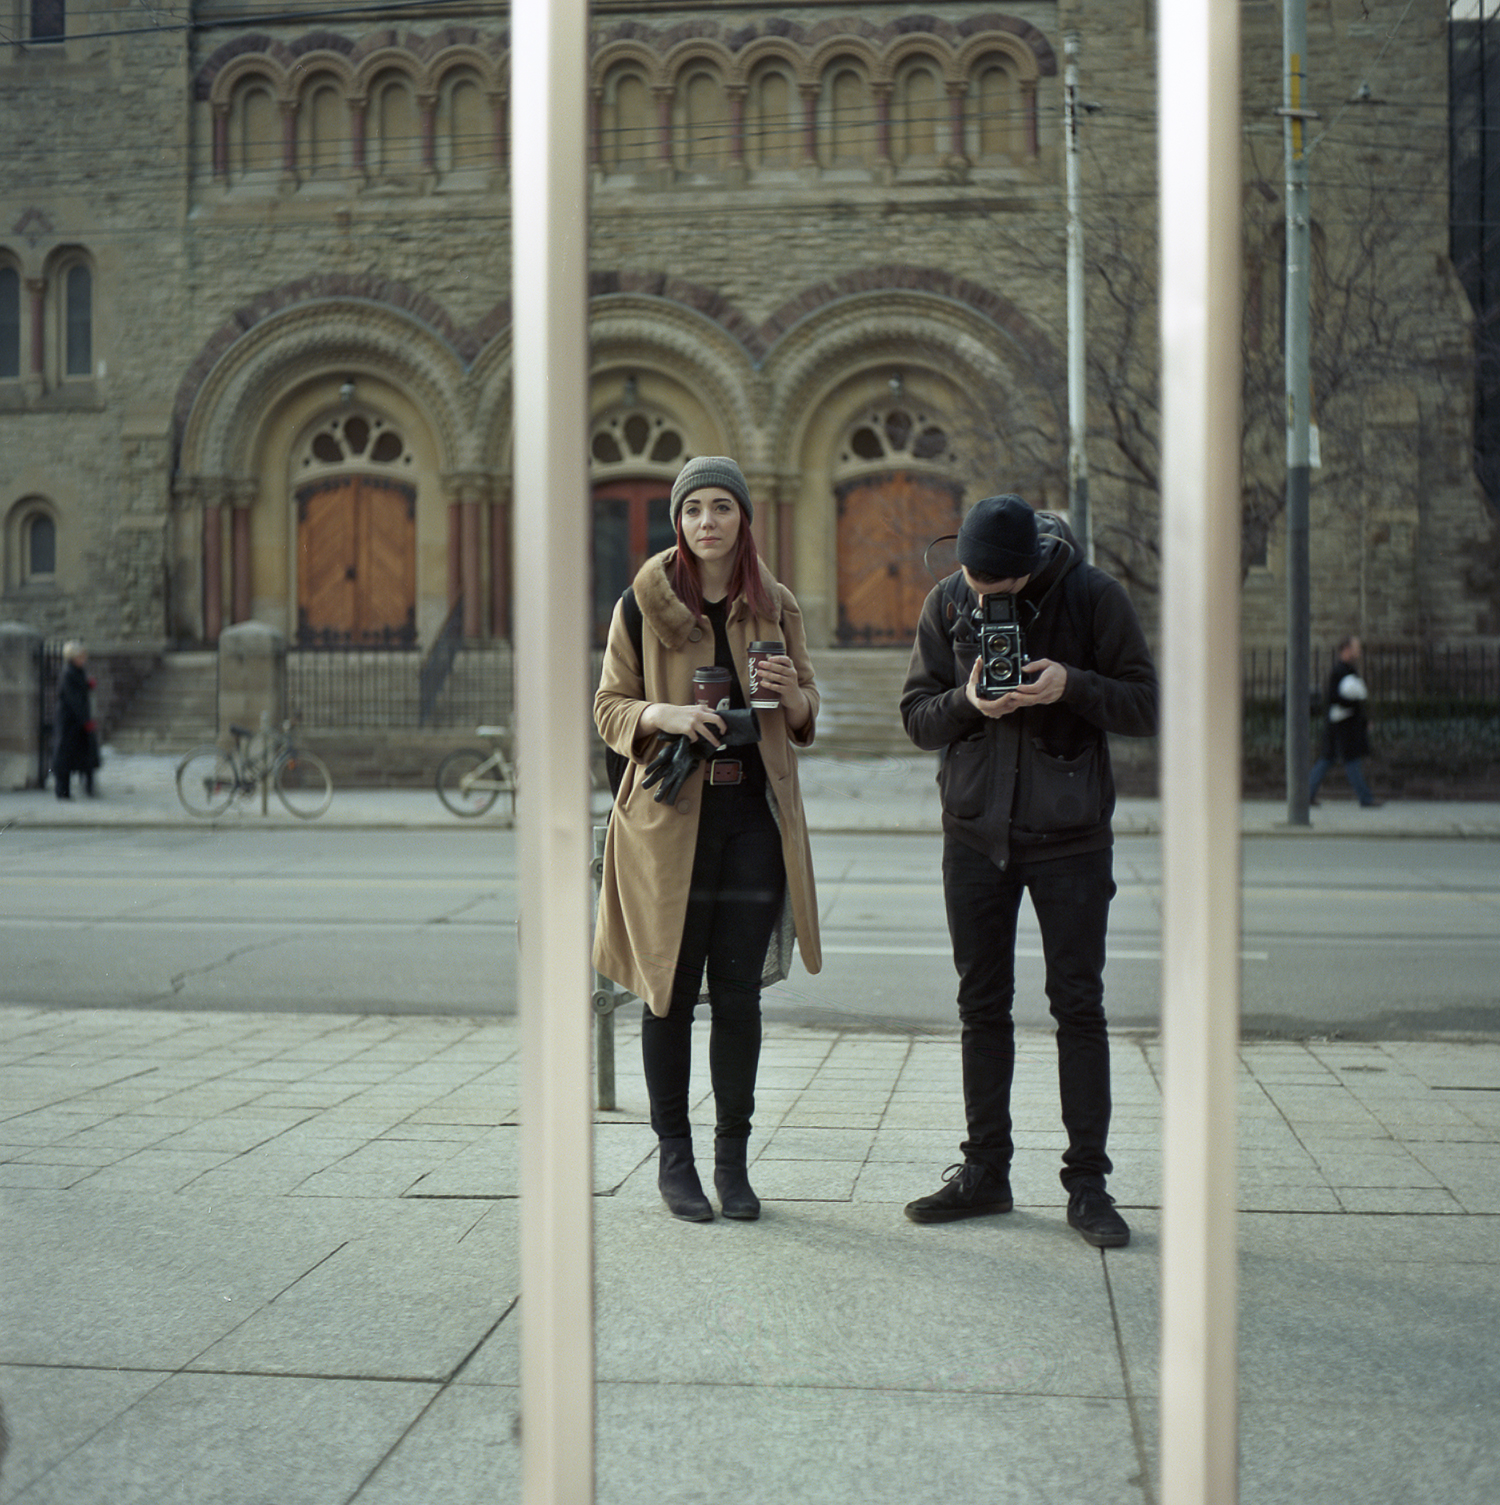 117-BaWinter-2014-Kodak-Ektar-Selfie-with-Ryanne-downtown-Toronto.jpg